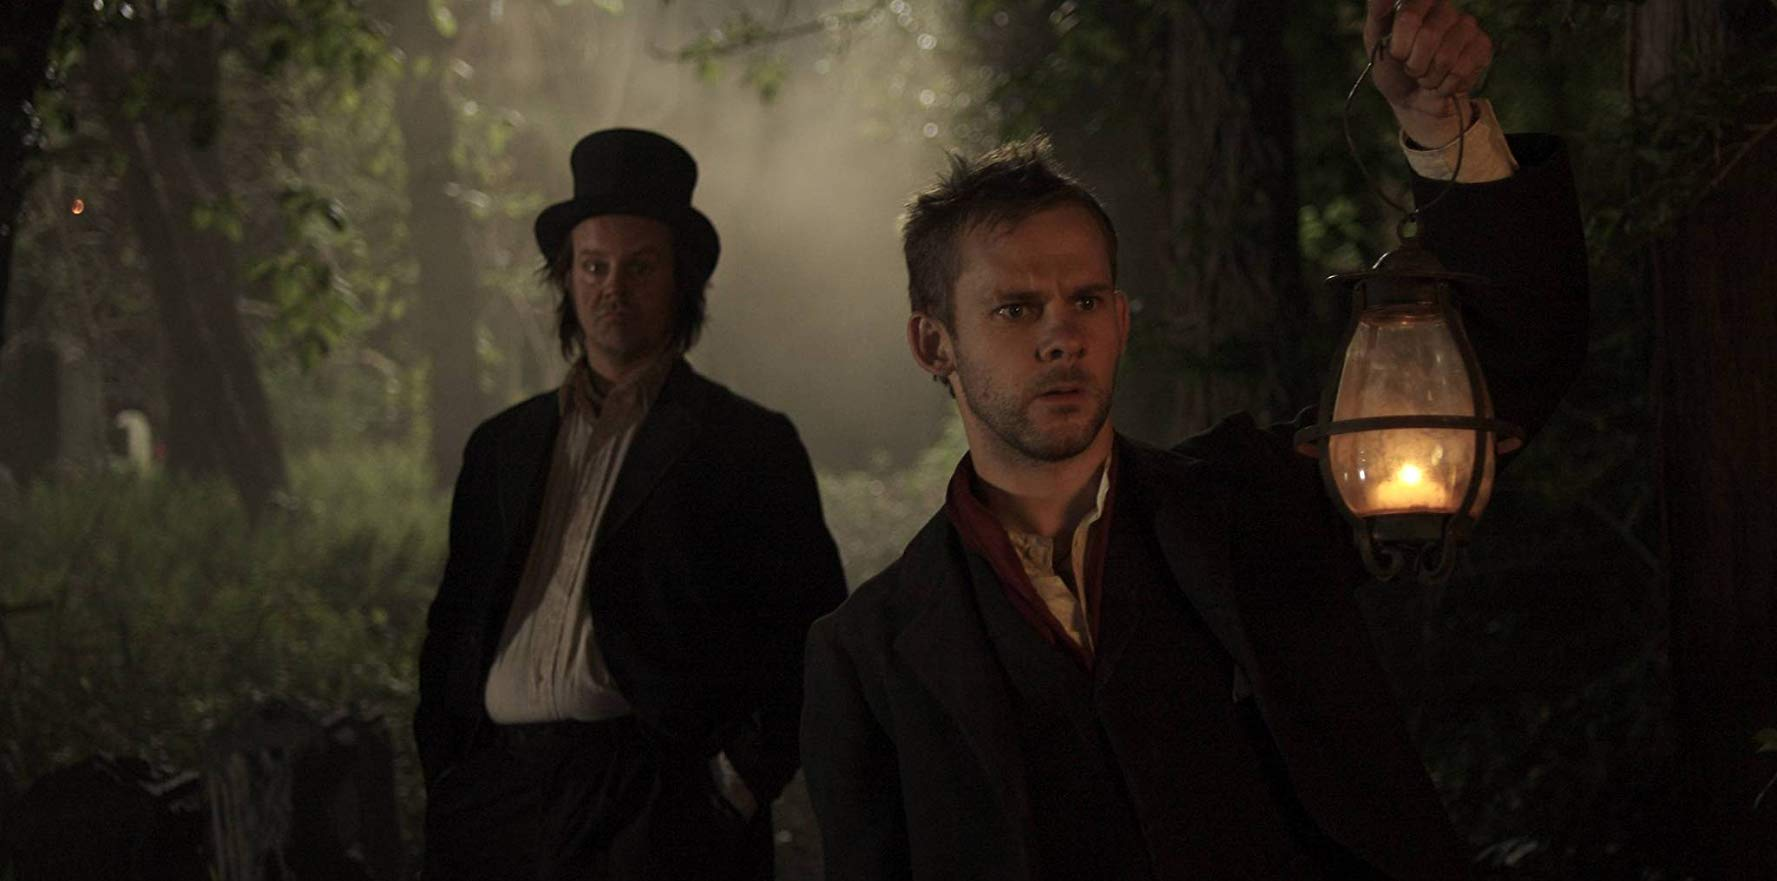 Body snatchers Grimes (Larry Fessenden) and Blake (Dominic Monaghan) in I Sell the Dead (2008)